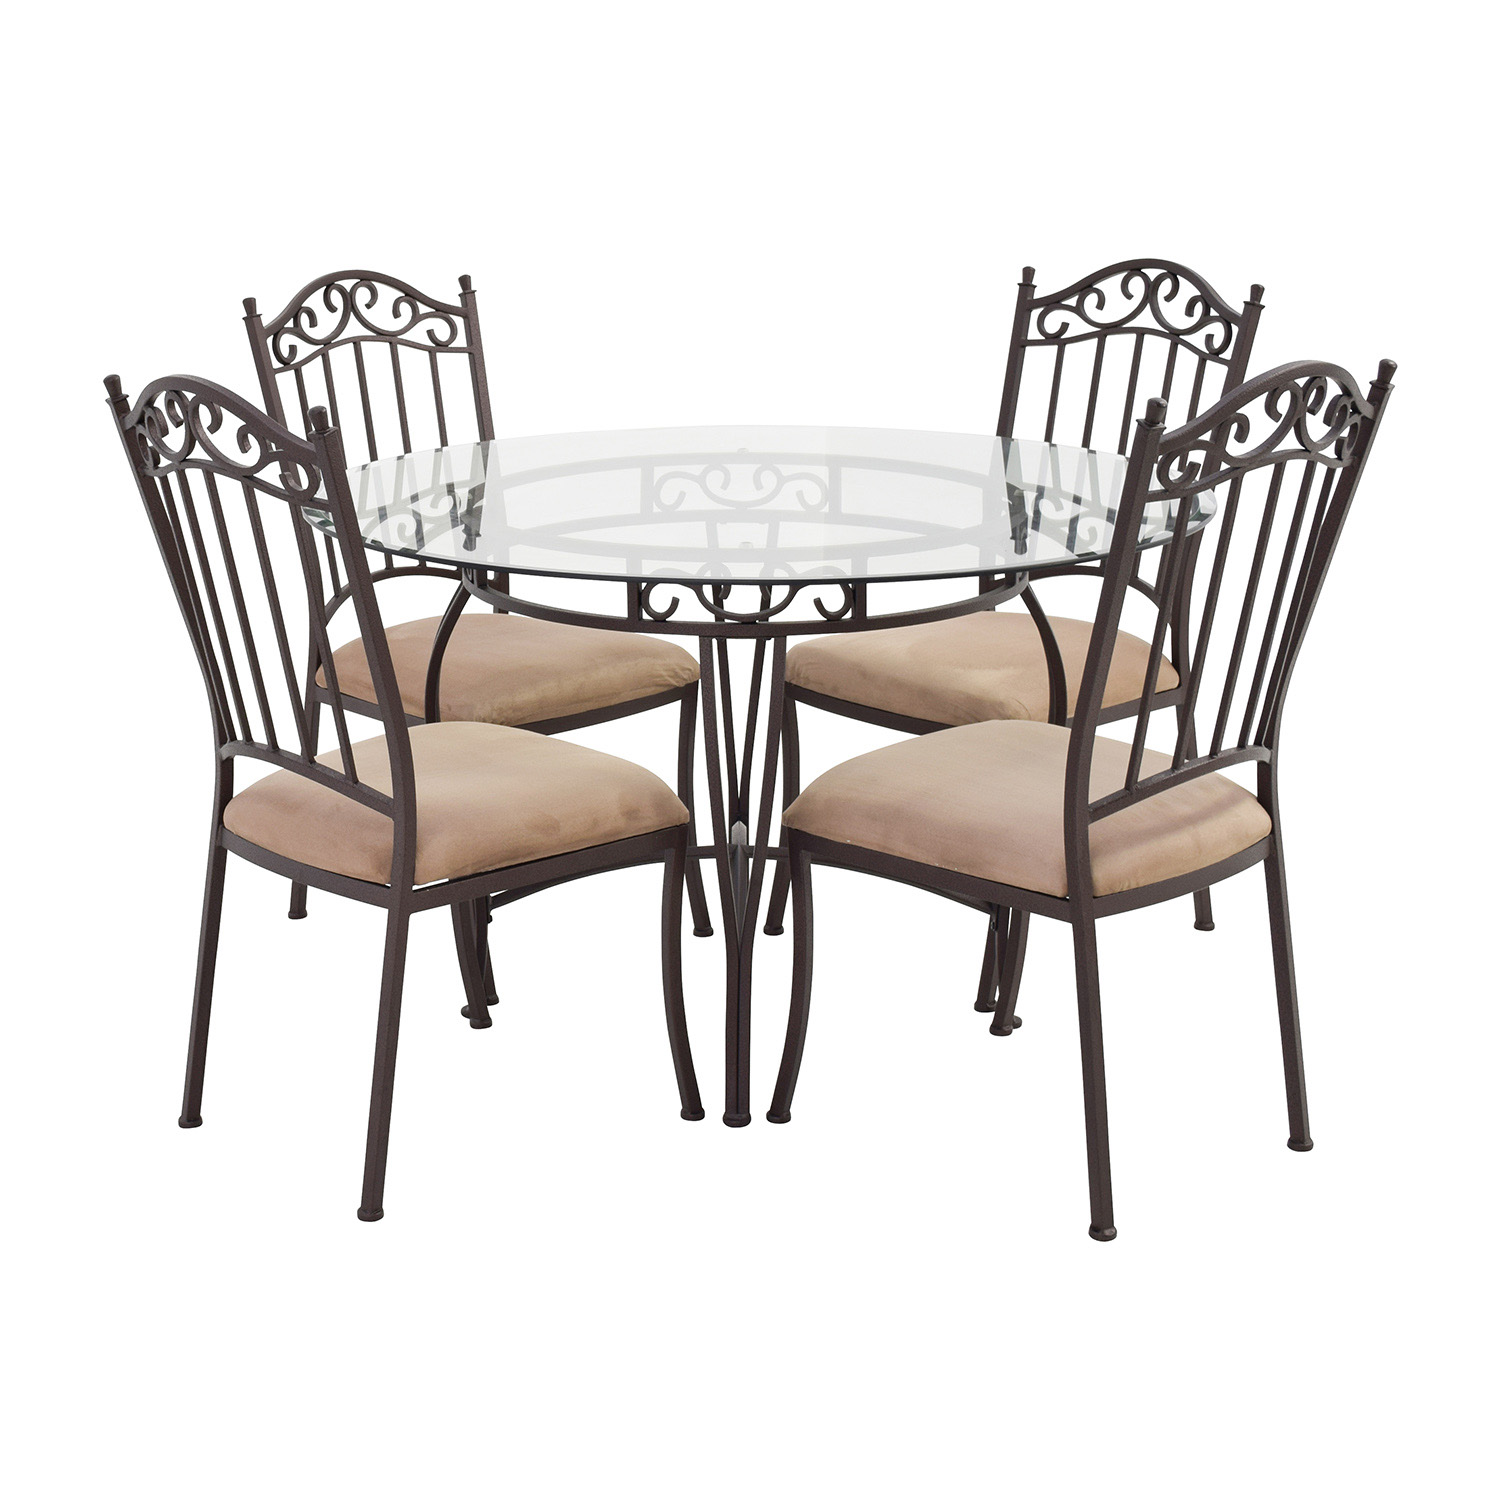 second hand wrought iron round glass table and chairs wrought iron kitchen chairs Wrought Iron Round Glass Table and Chairs Tables